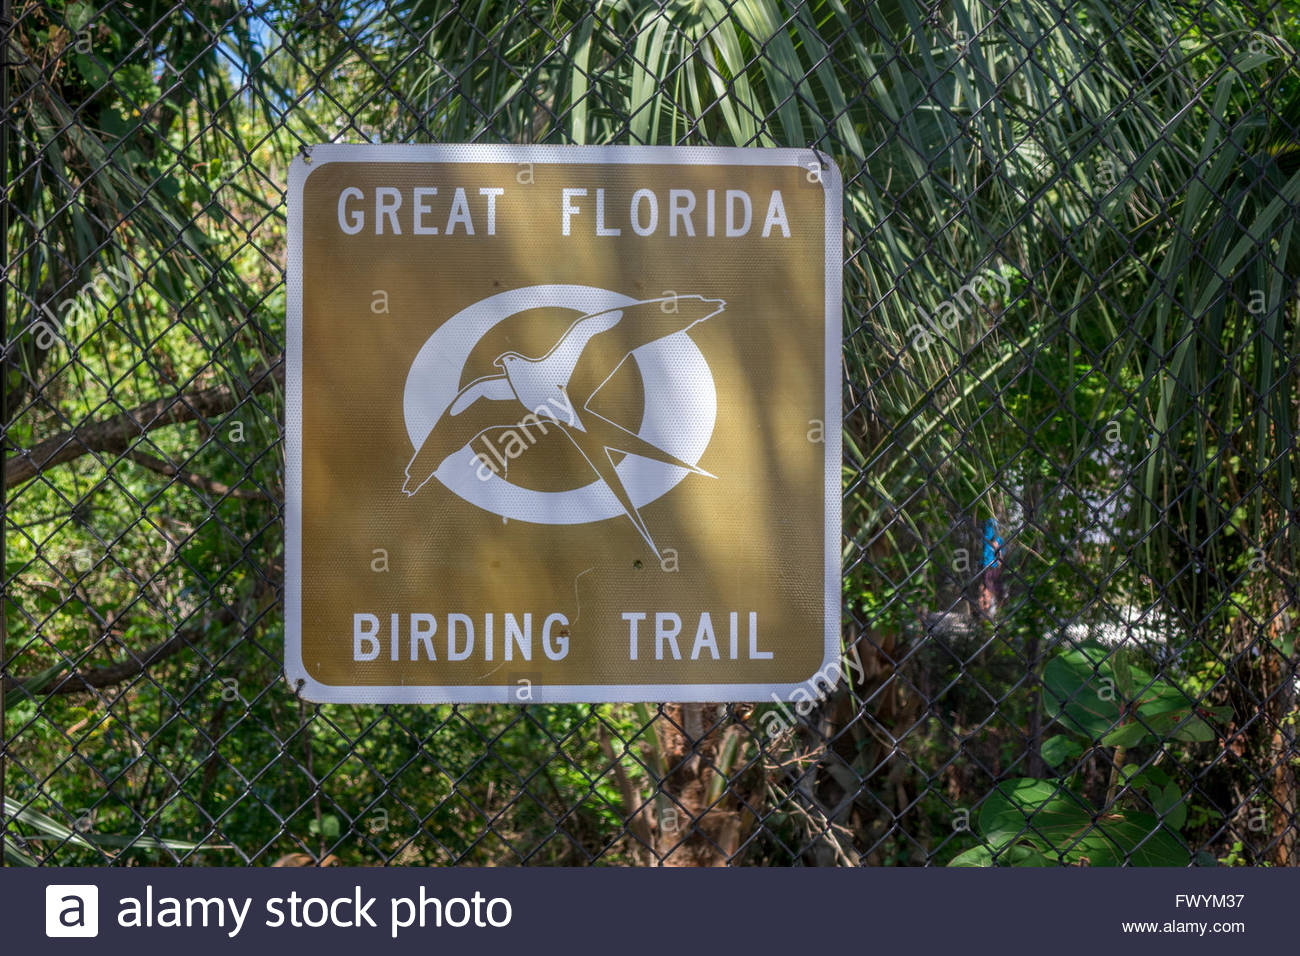 Great Florida Birding Trail Stock Photos & Great Florida Birding - Great Florida Birding Trail Map